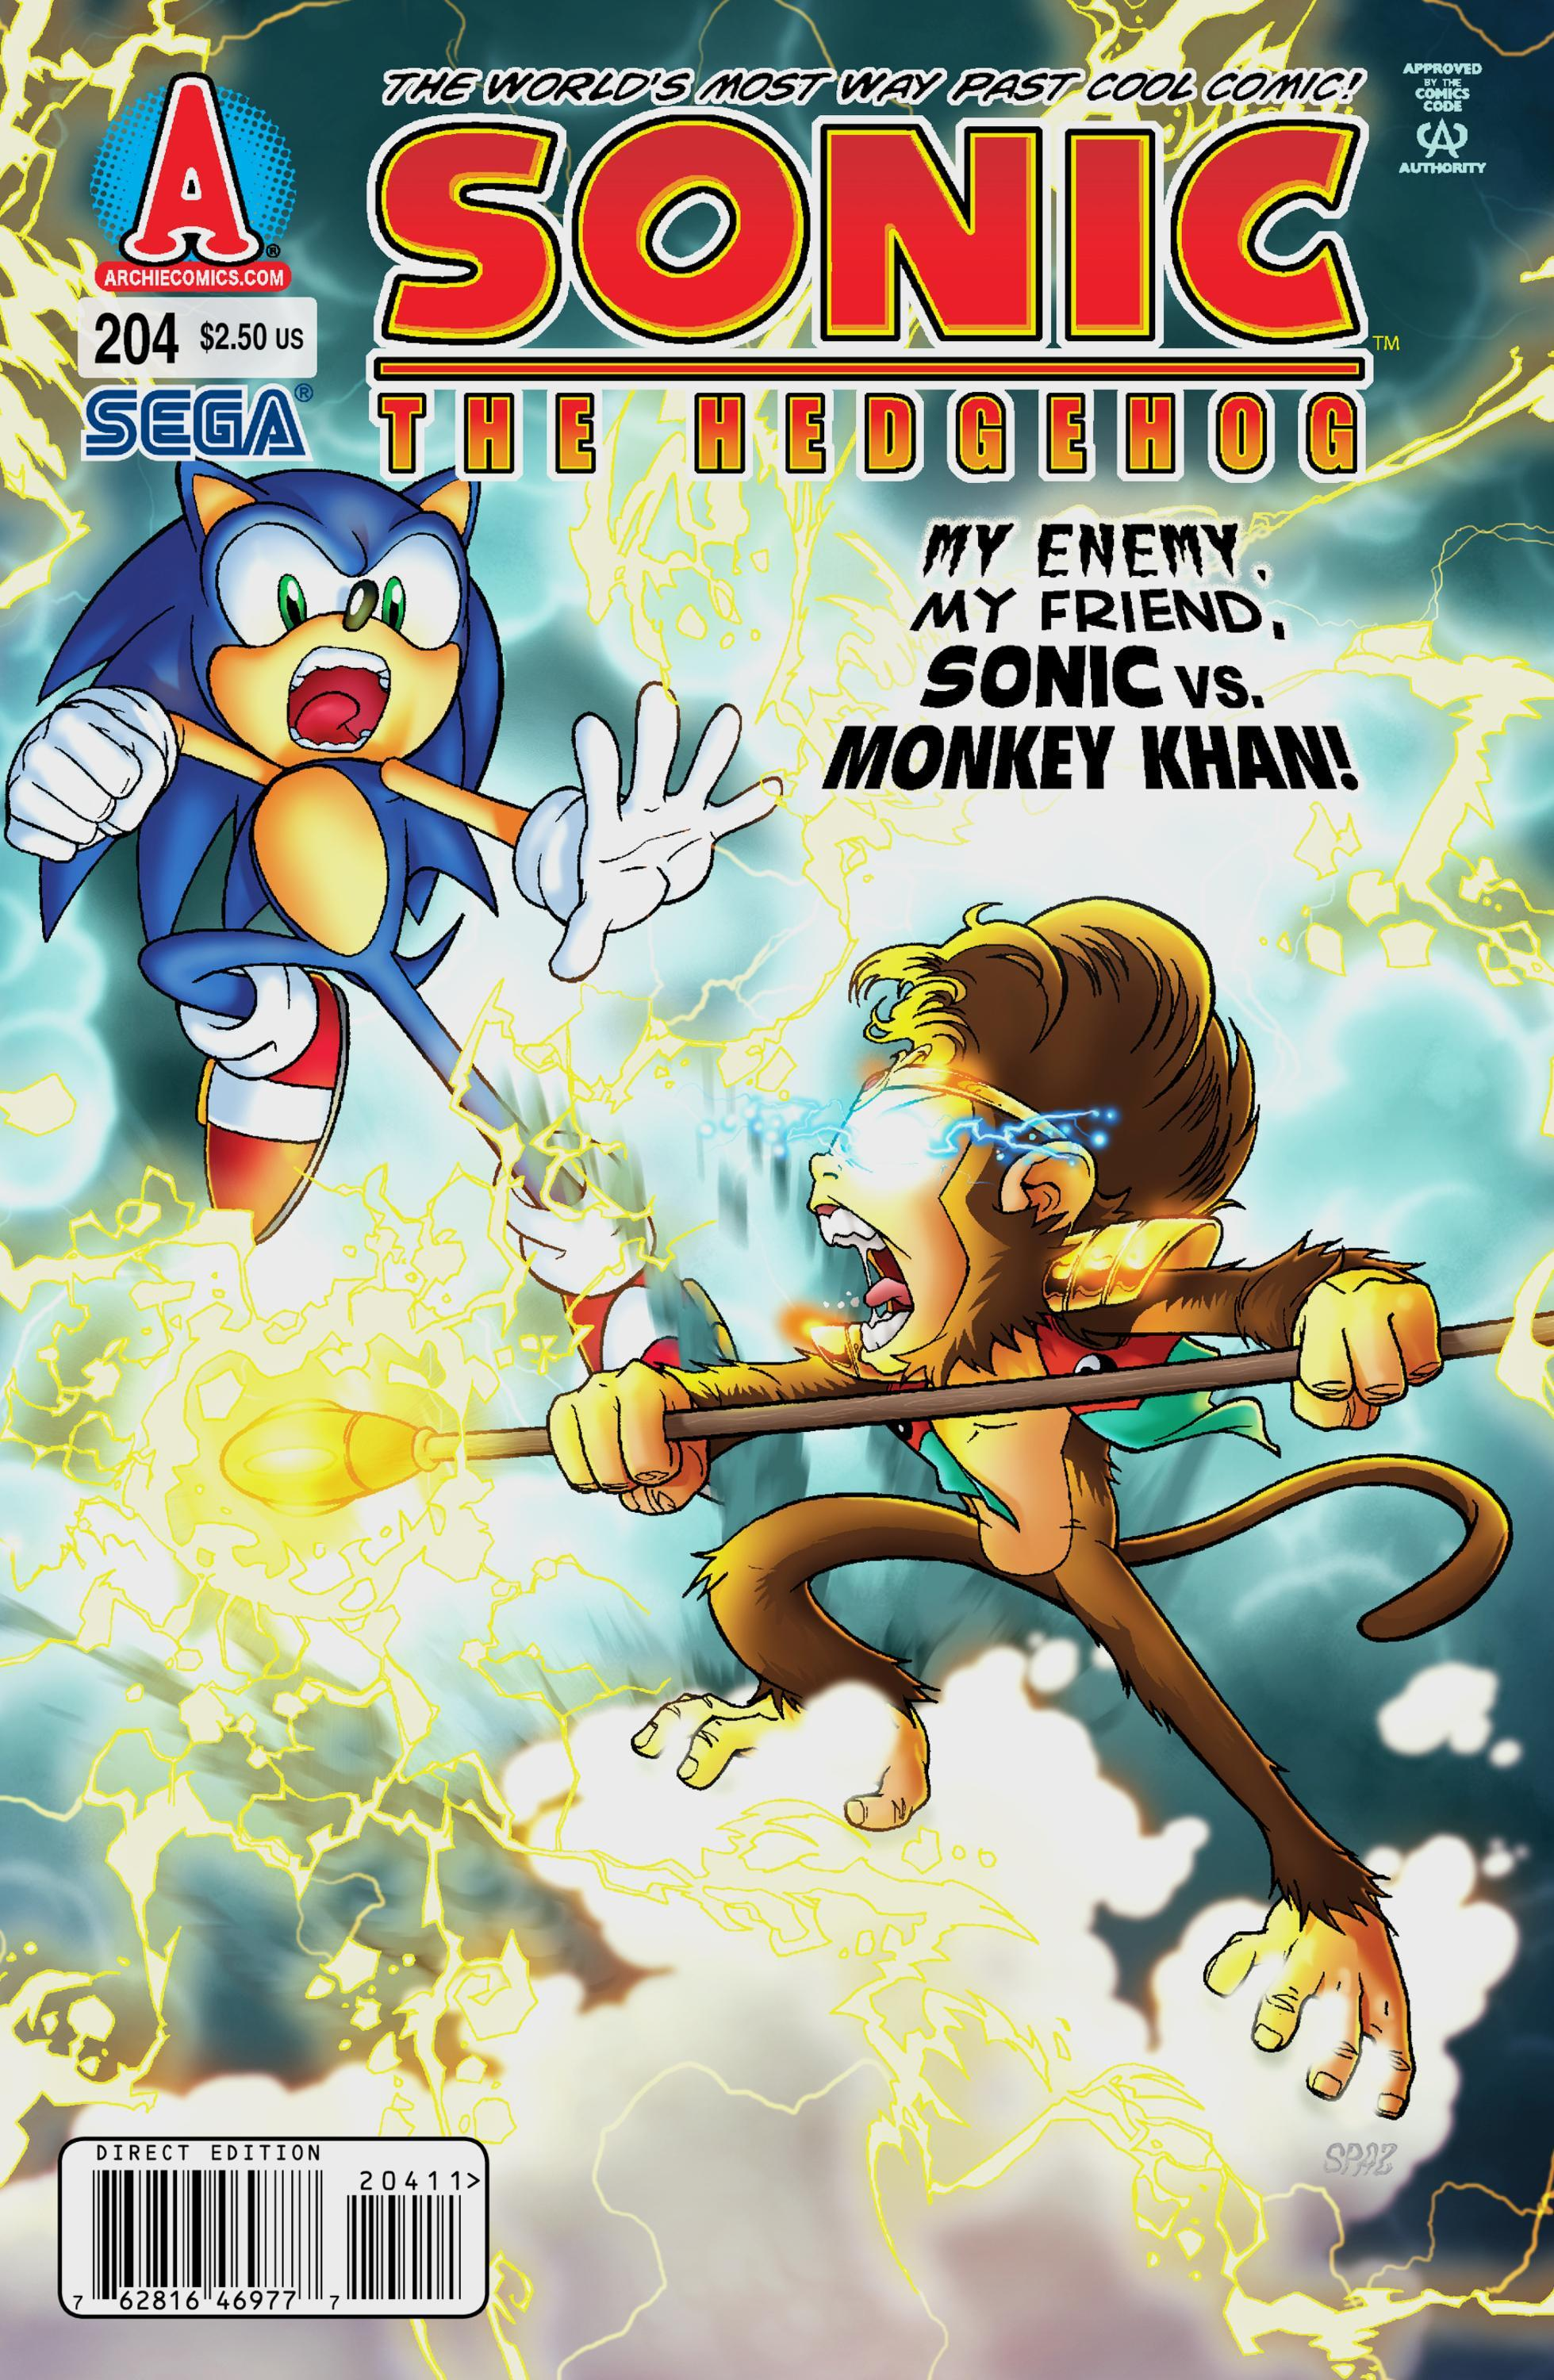 Archie Sonic the Hedgehog Issue 204